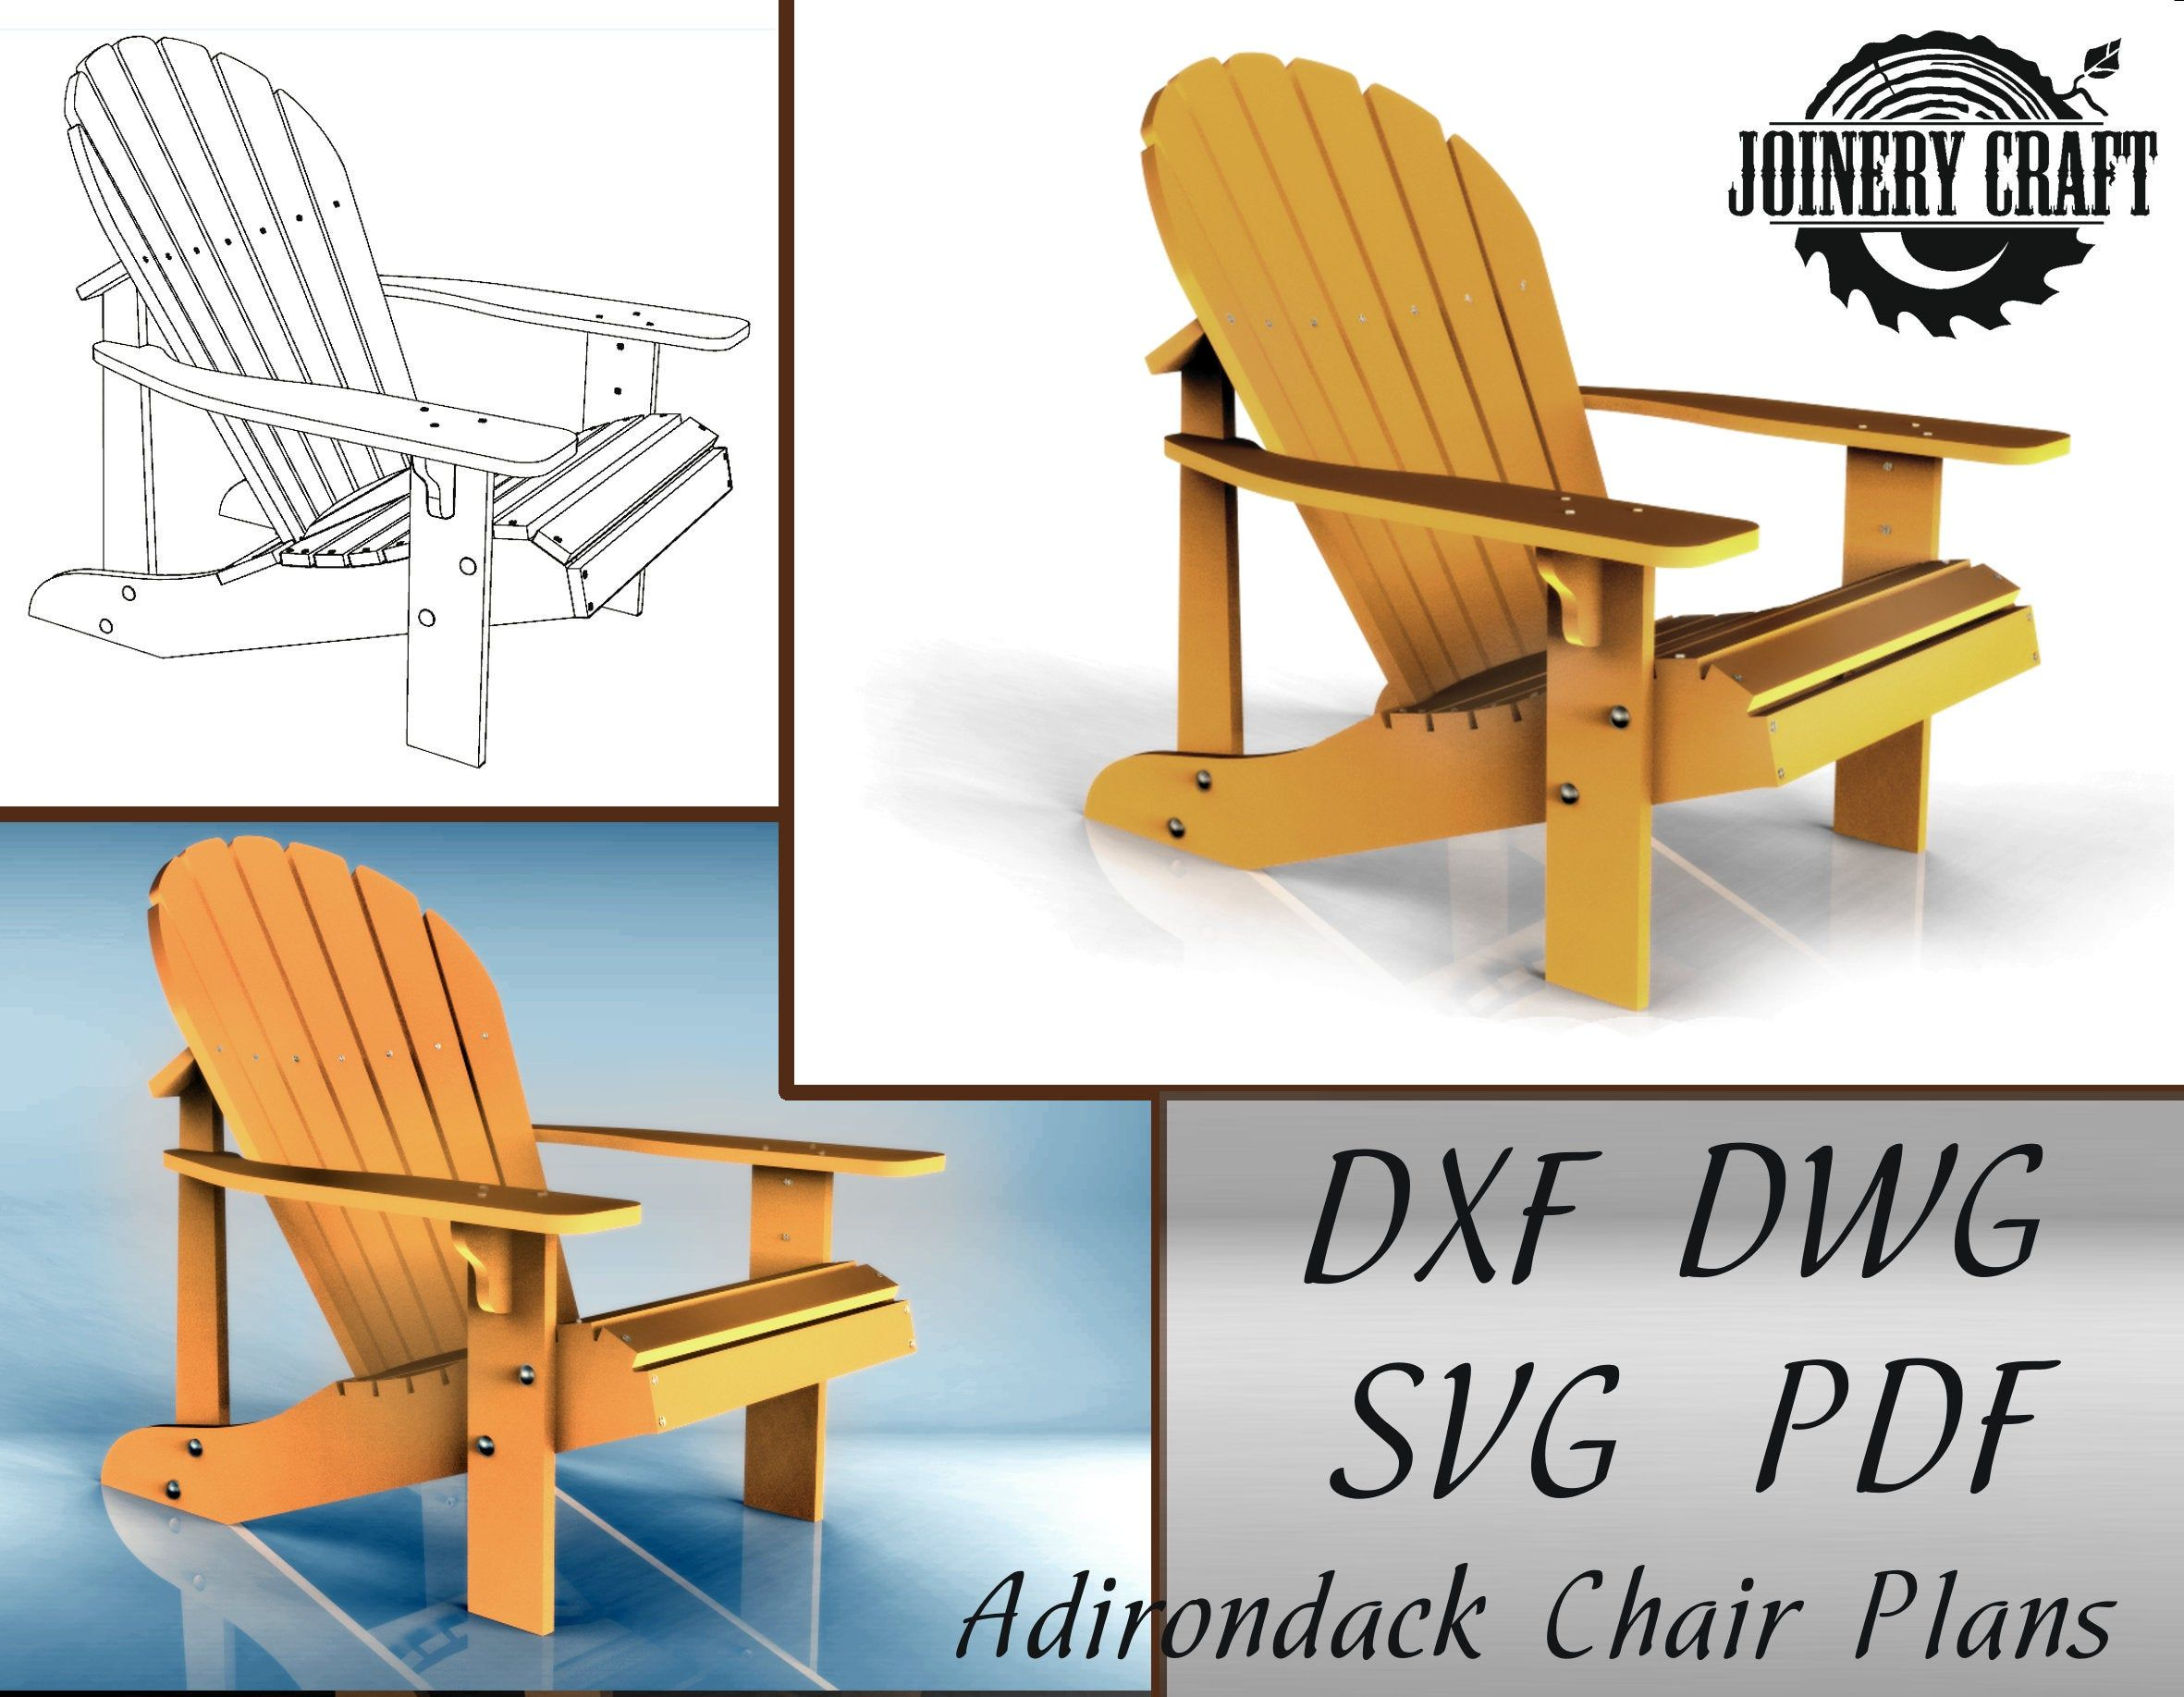 DIY Adirondack Chair Plans PDF format file SVG Dwg Dxf